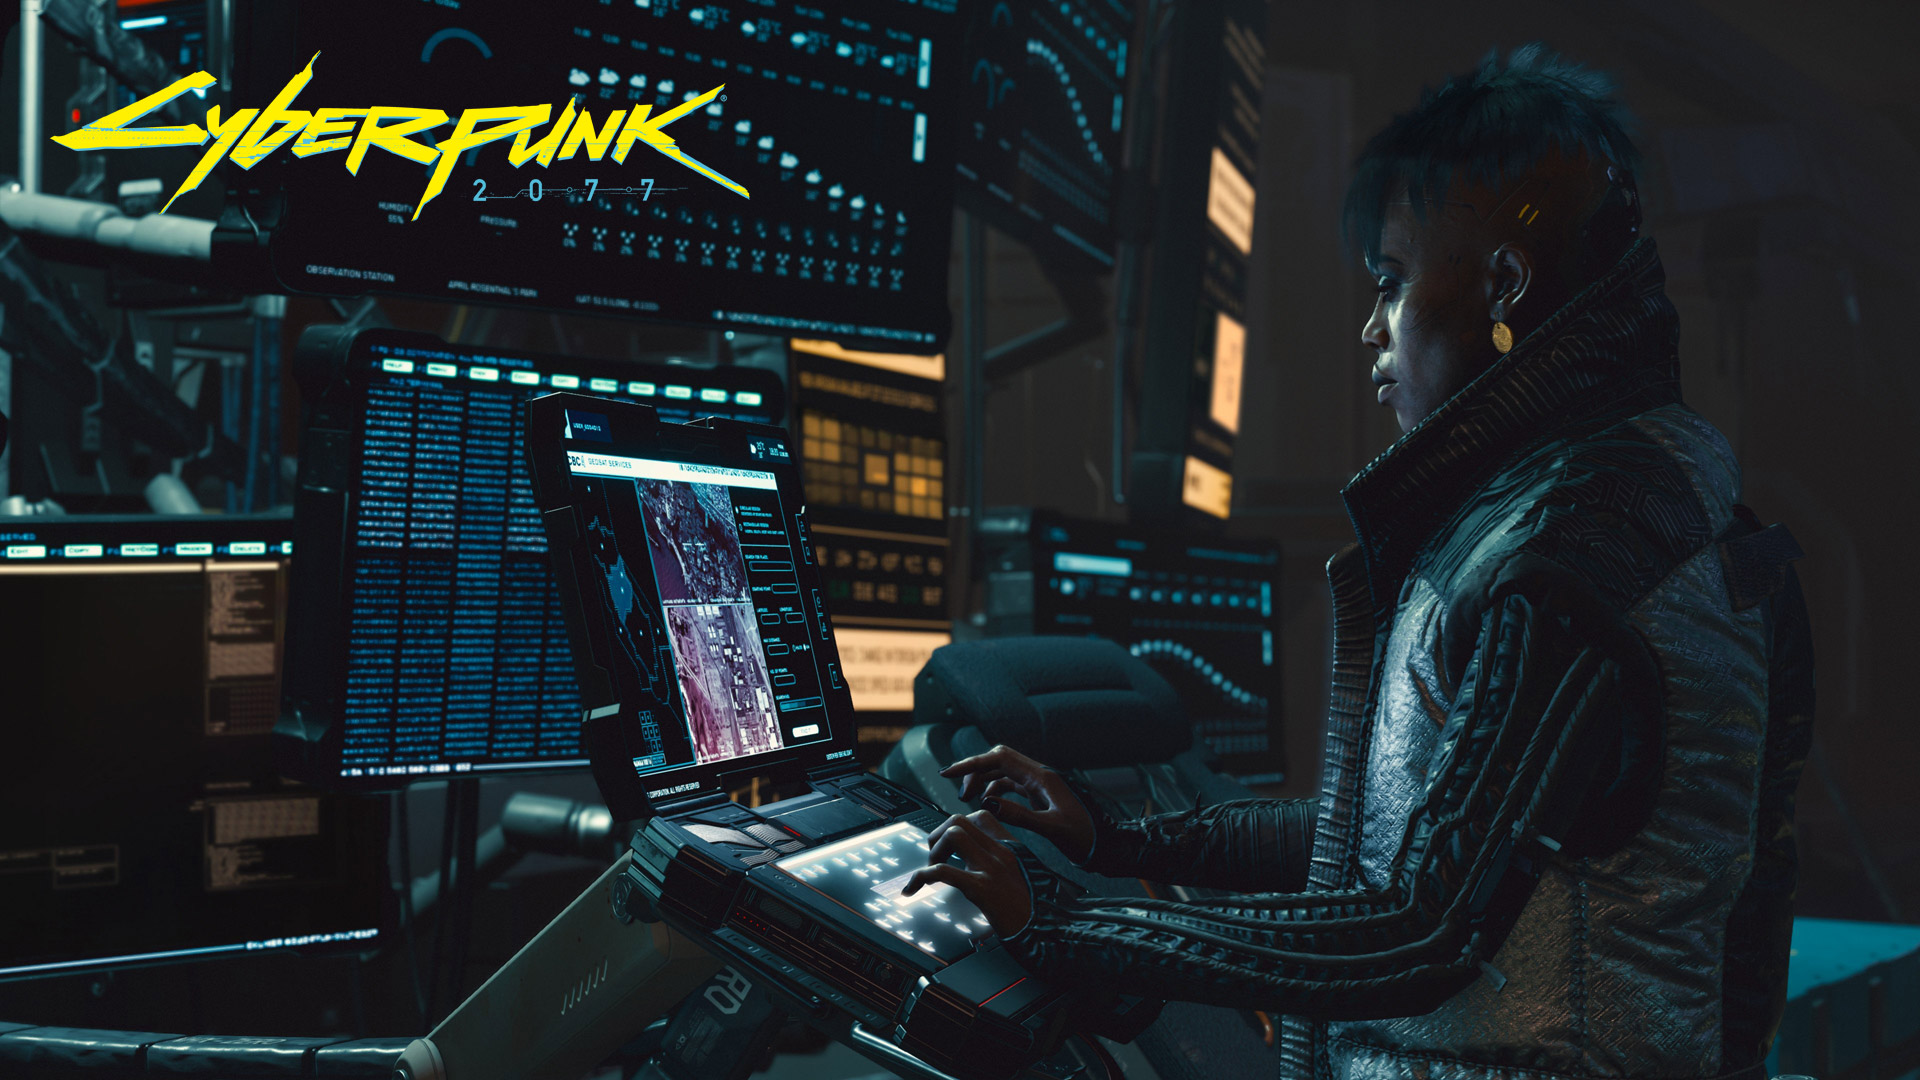 Free Cyberpunk 2077 Wallpaper in 1920x1080